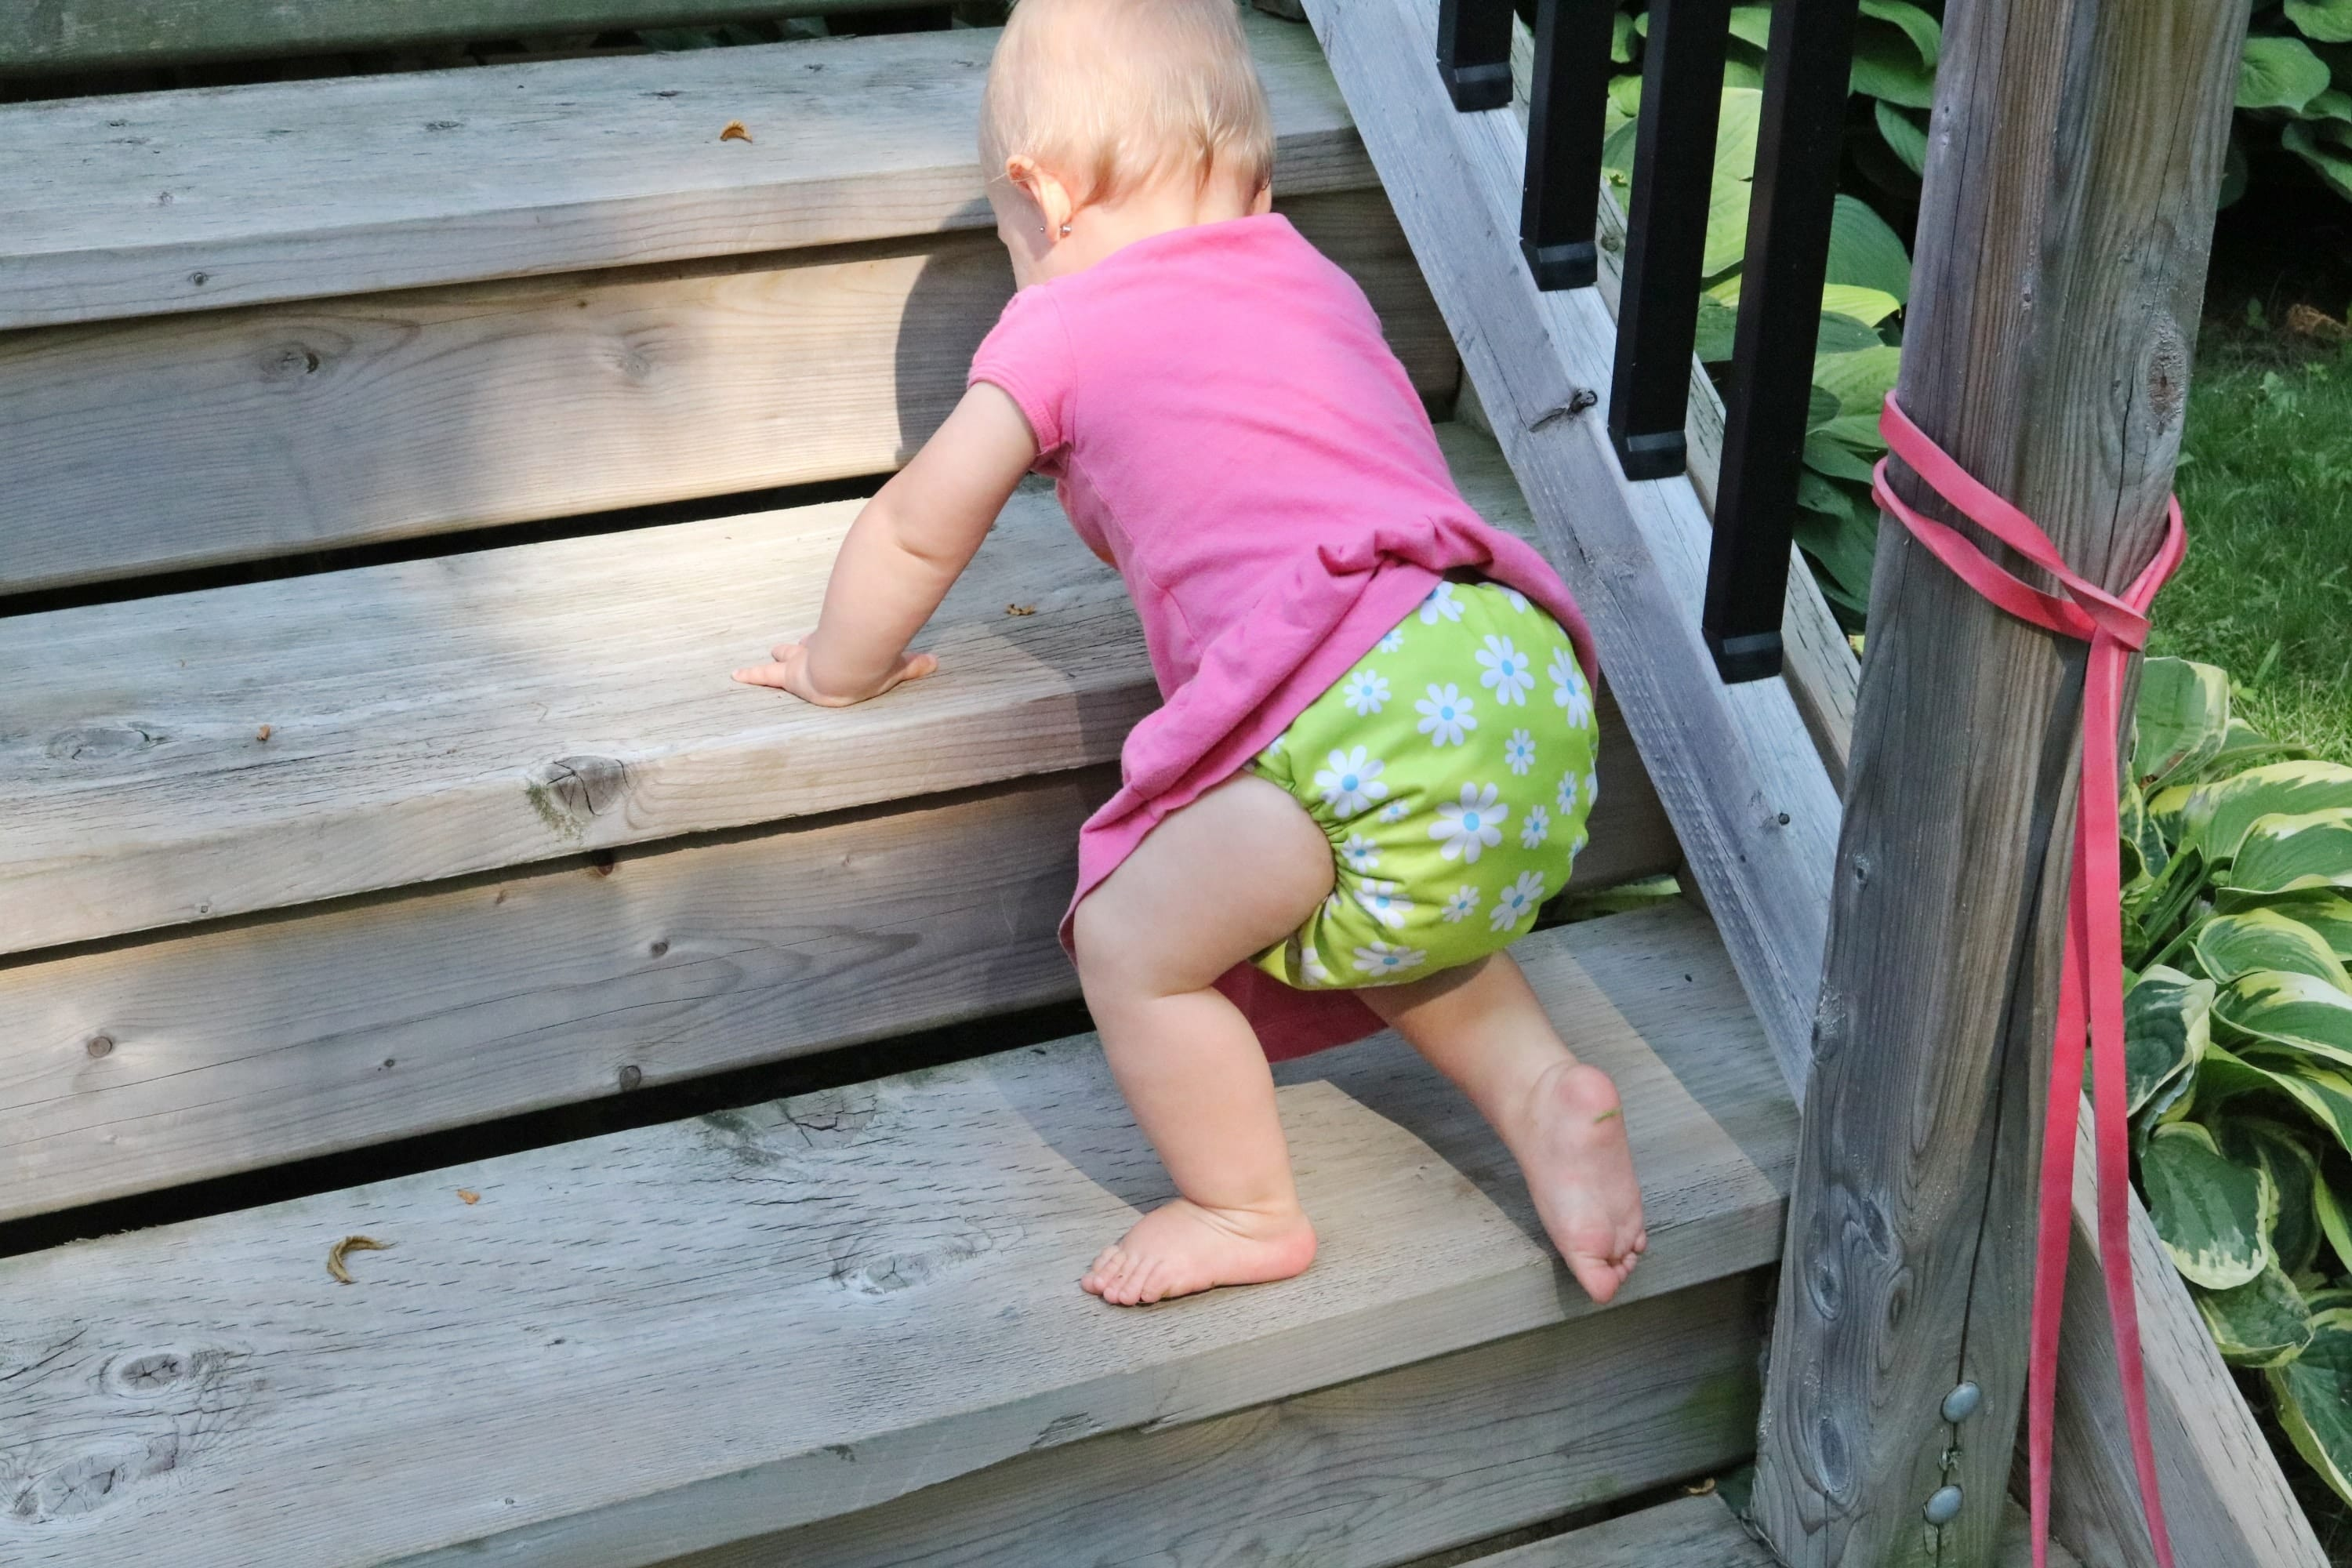 Baby in a pink shirt and green cloth diaper crawling up wooden stairs outside